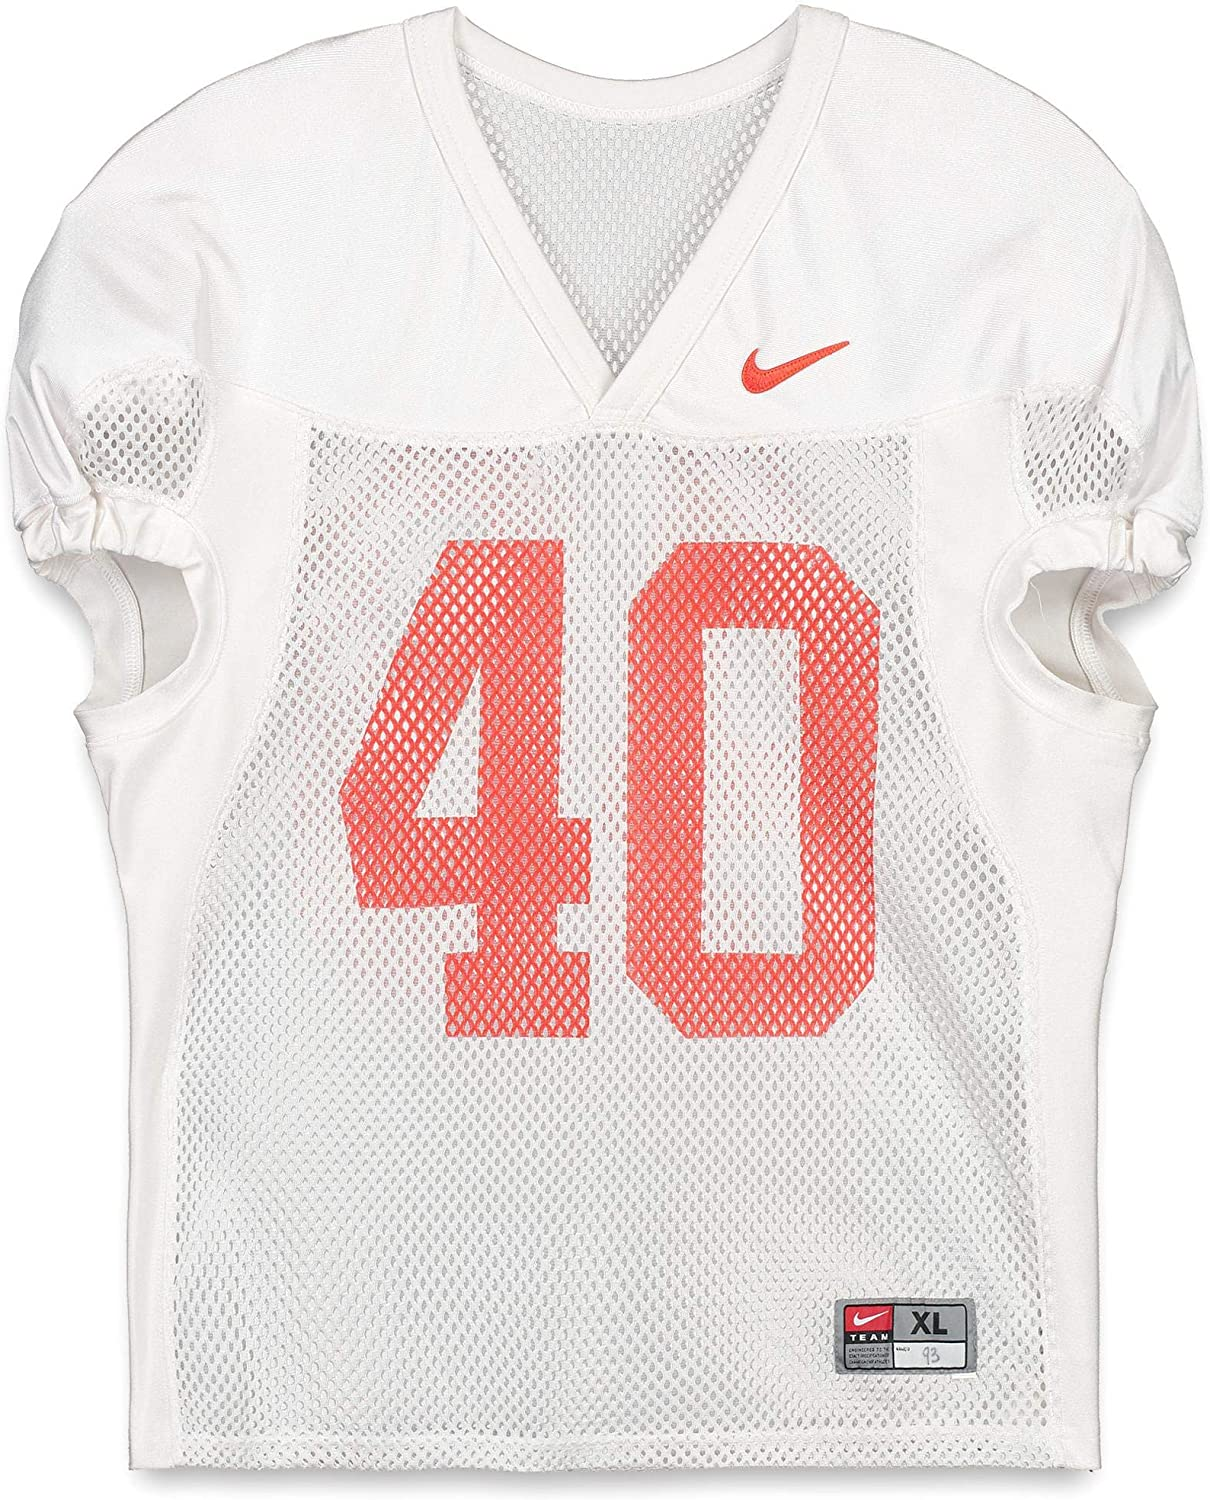 Clemson Tigers Practice-Used #40 White Jersey from the 2015-17 Football Seasons - Fanatics Authentic Certified